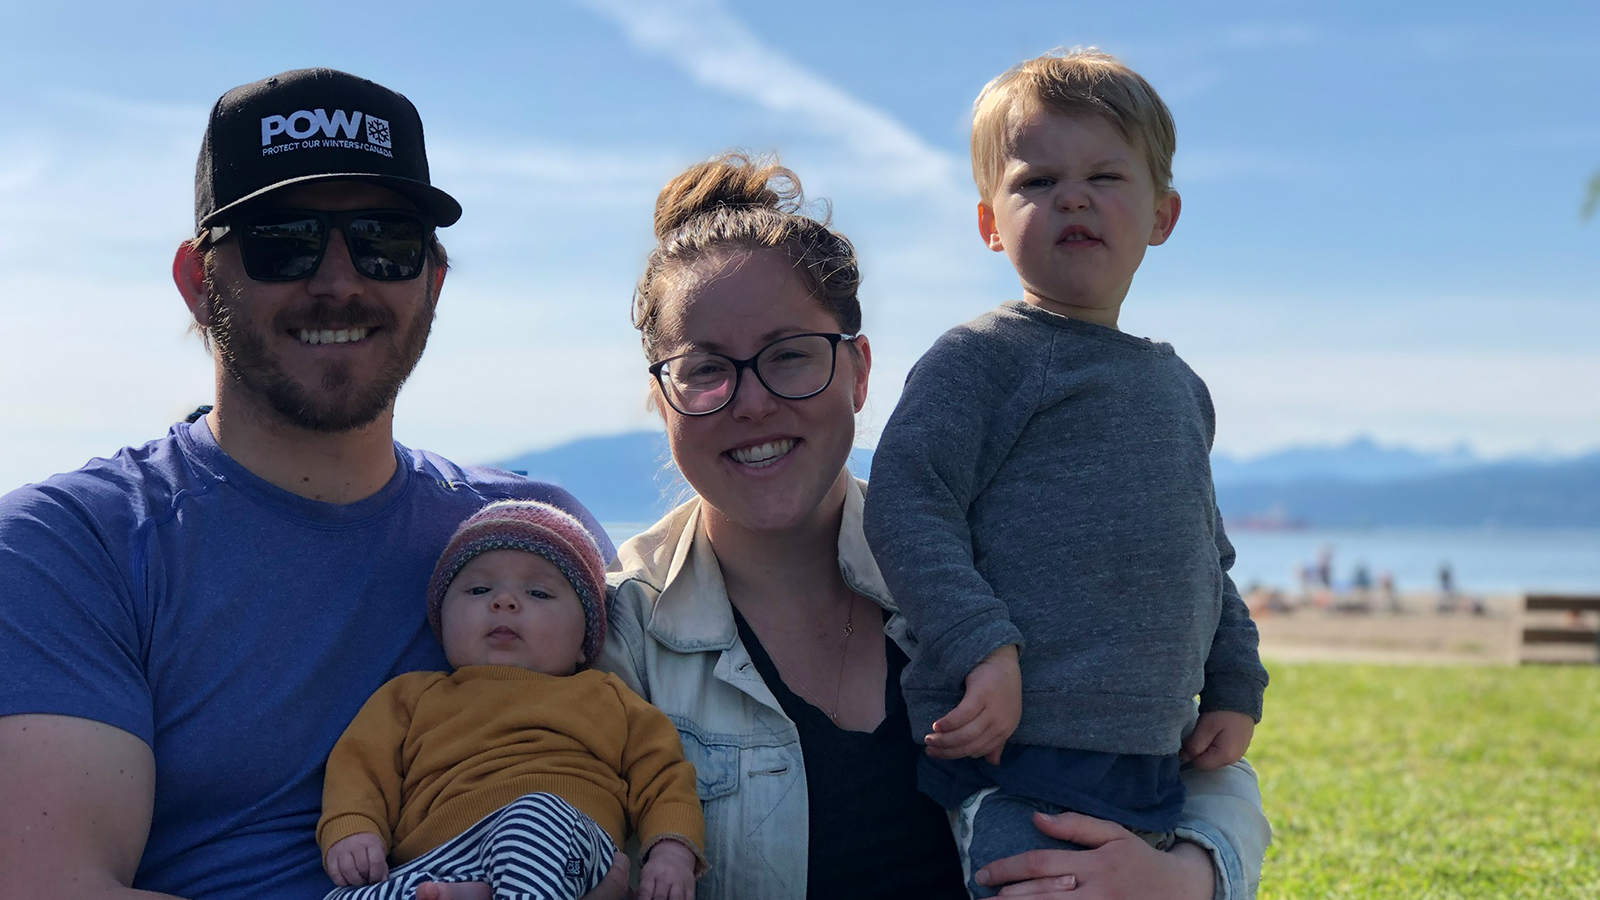 A family that raised $2 million for their baby's life-saving medical treatment has received it for free